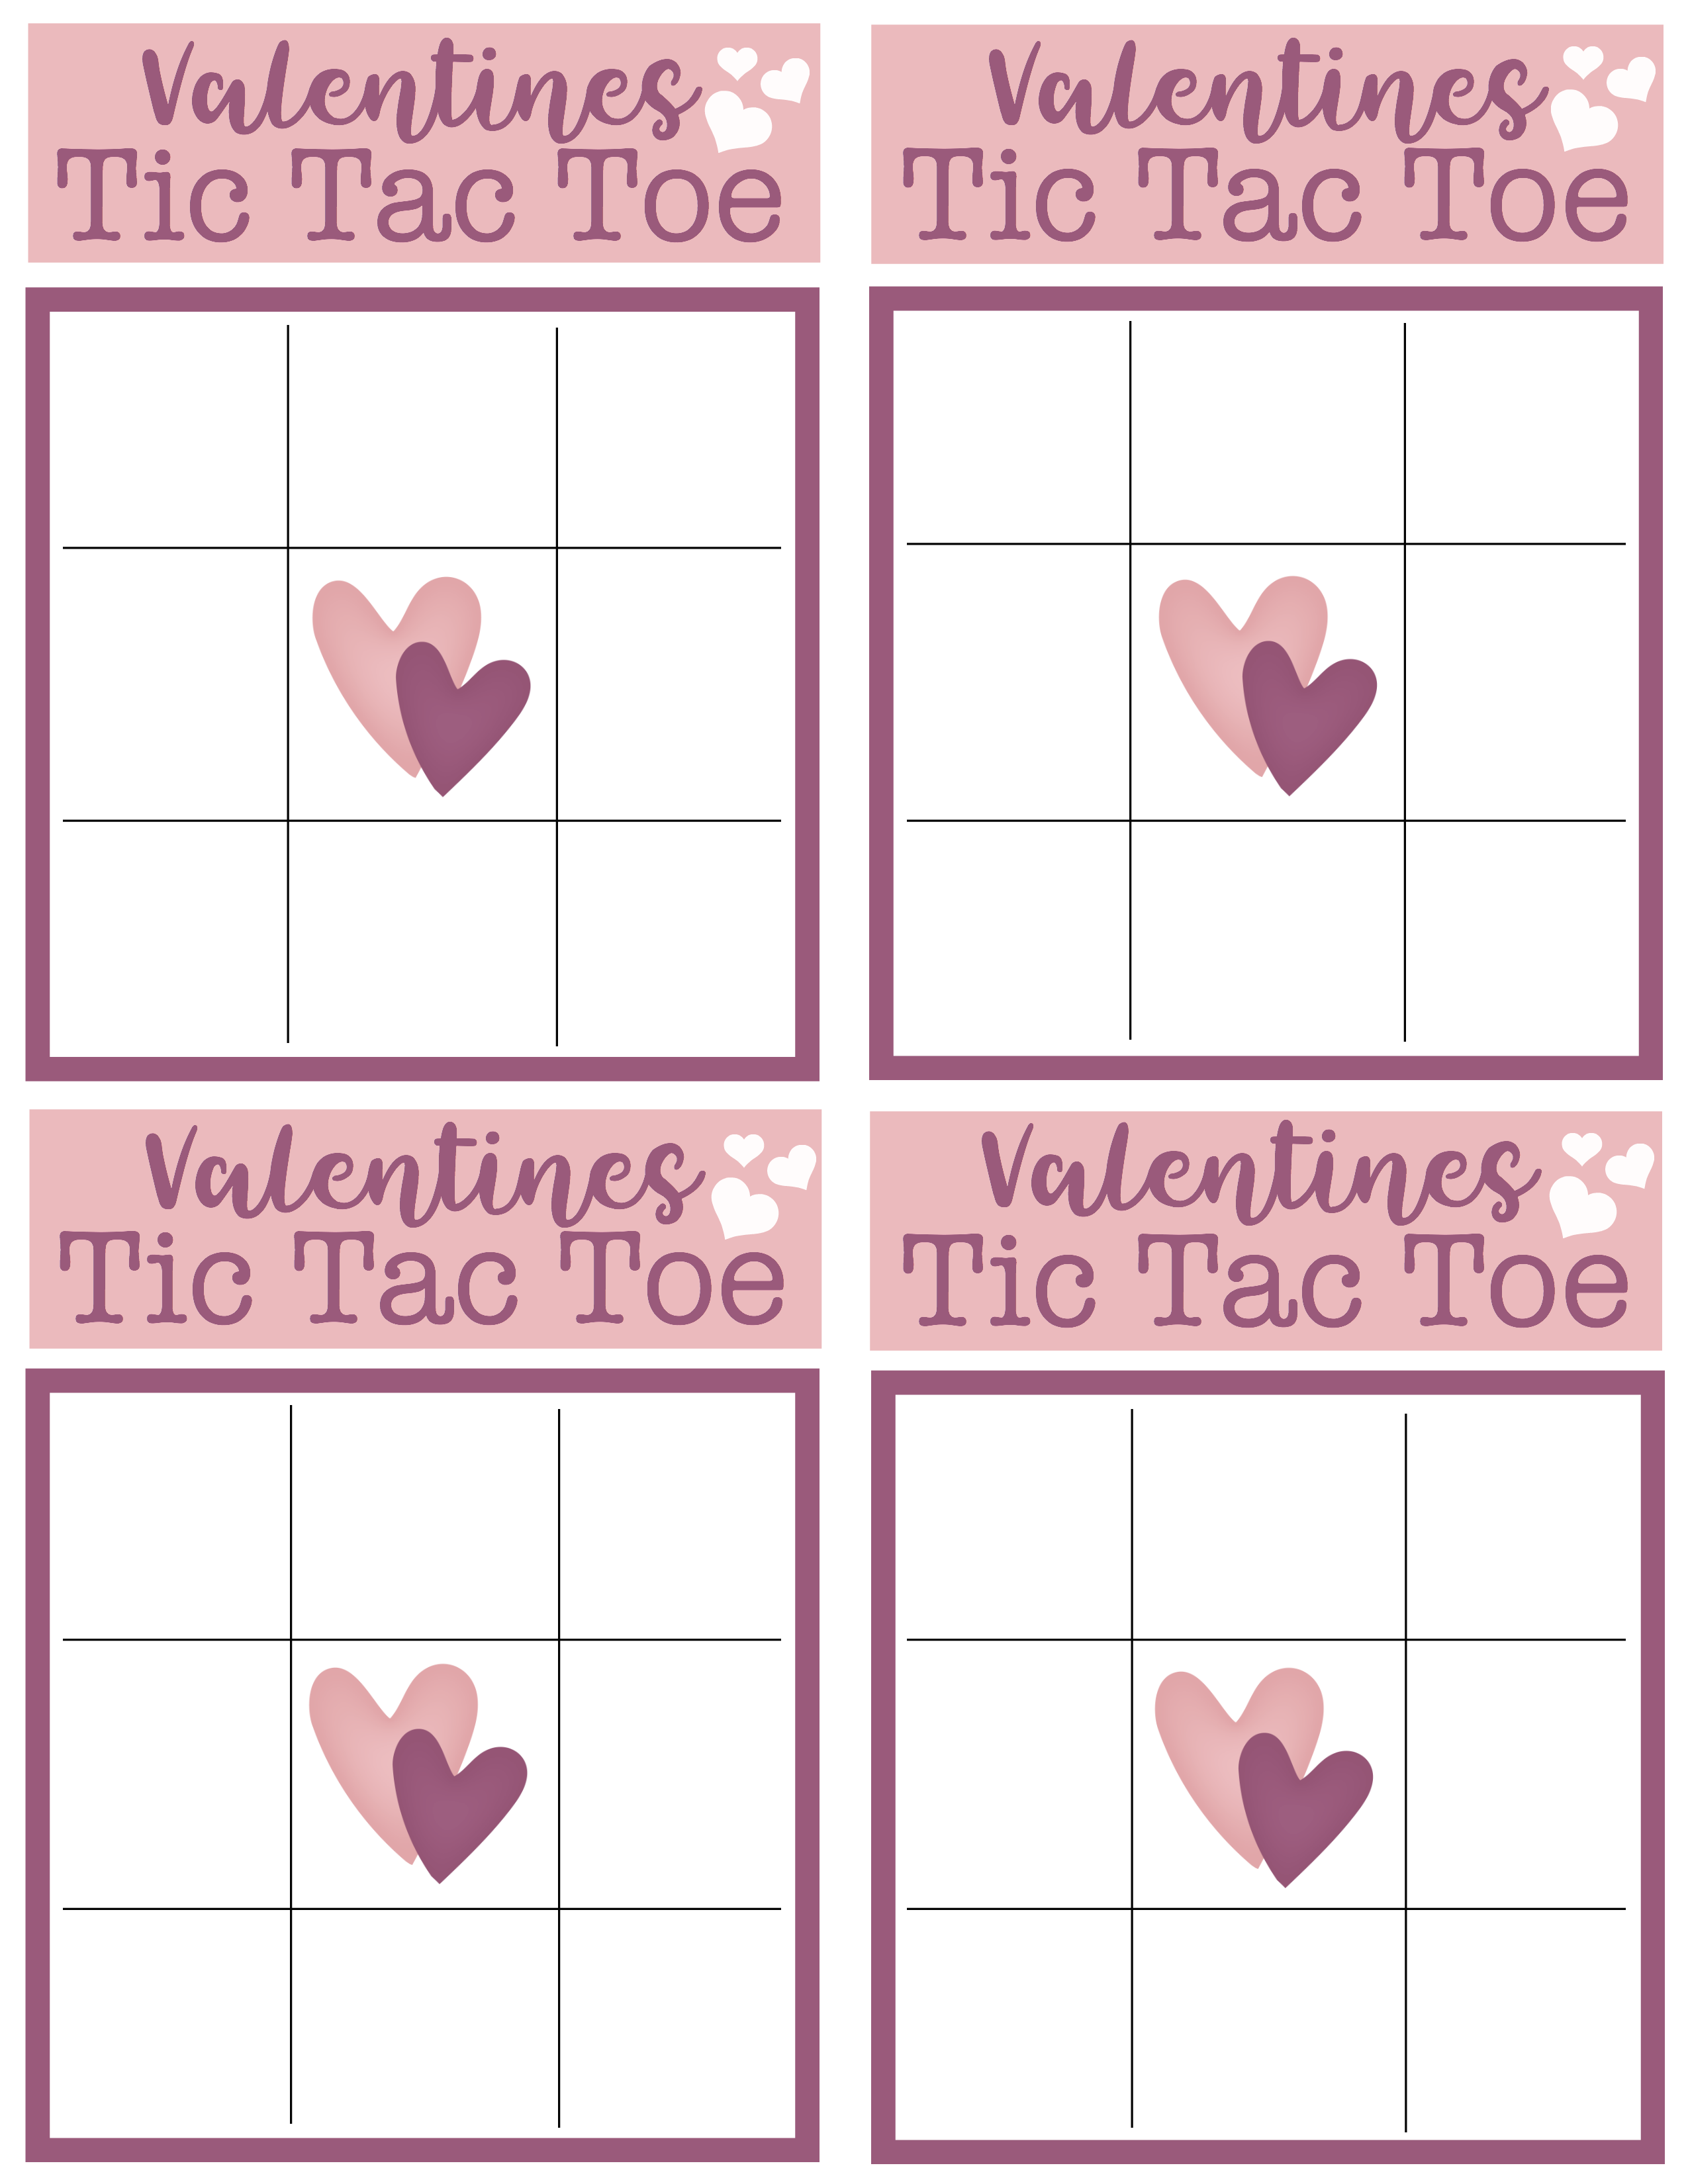 Challenge your friends and family to a fun game of Valentines Tic Tac Toe with this FREE Valentines Tic Tac Toe printable.